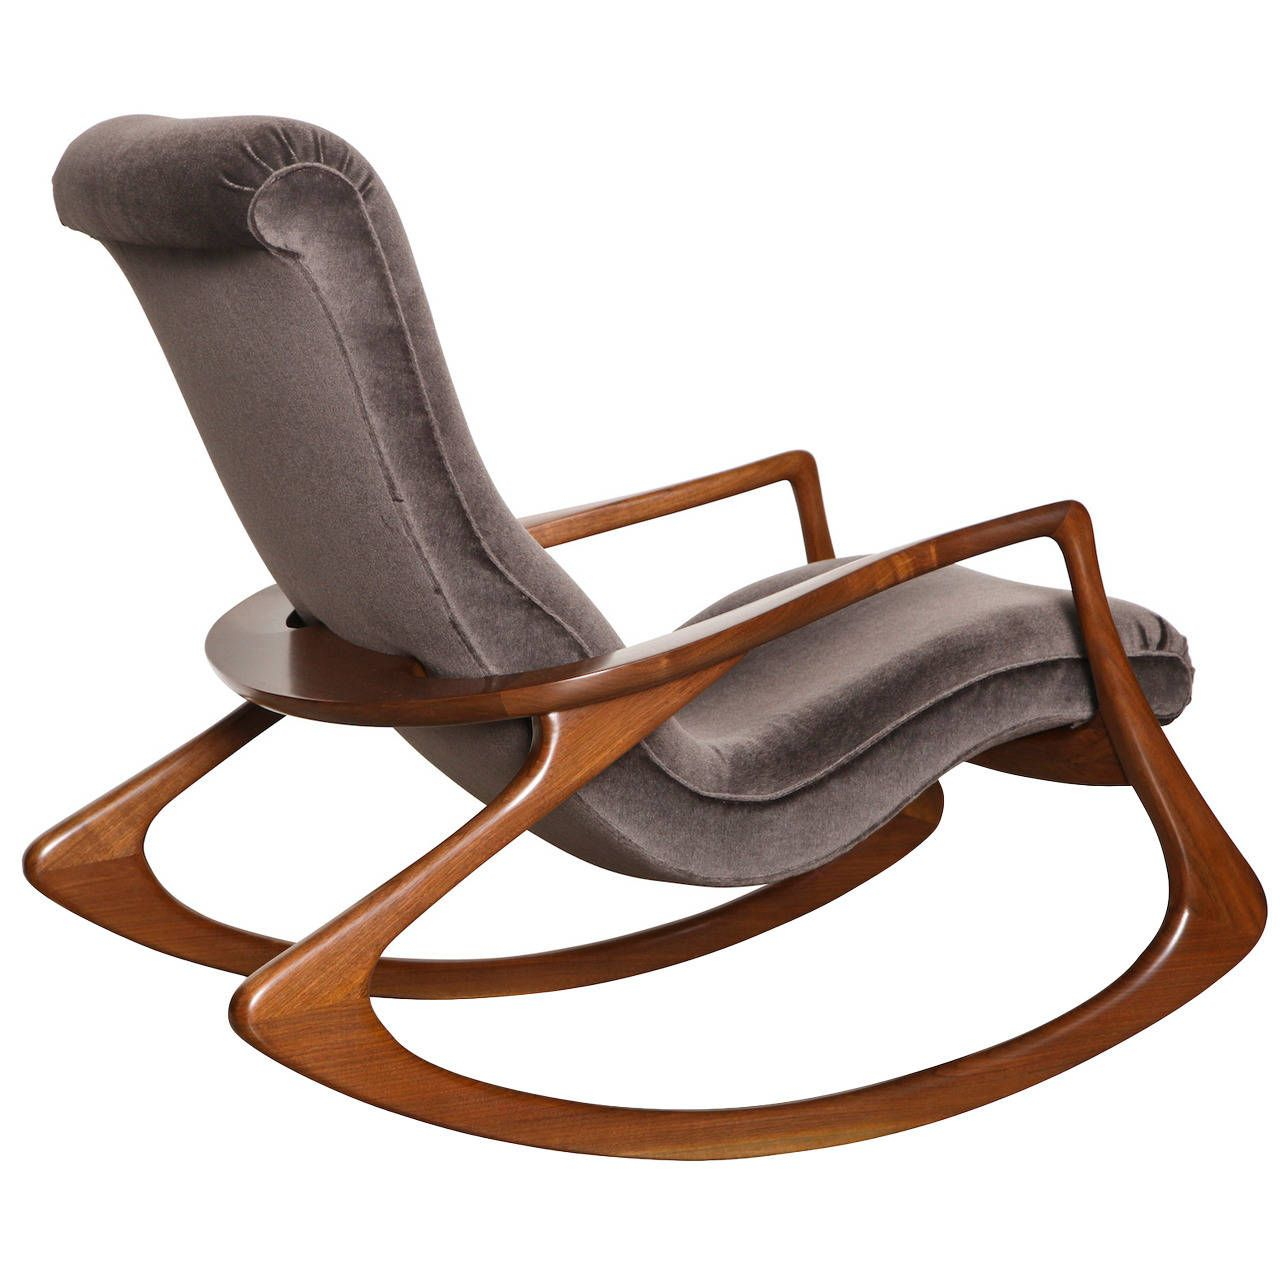 Chaise Rocking Chair Vladimir Kagan Rocking Chair Déco Assises Chaise à